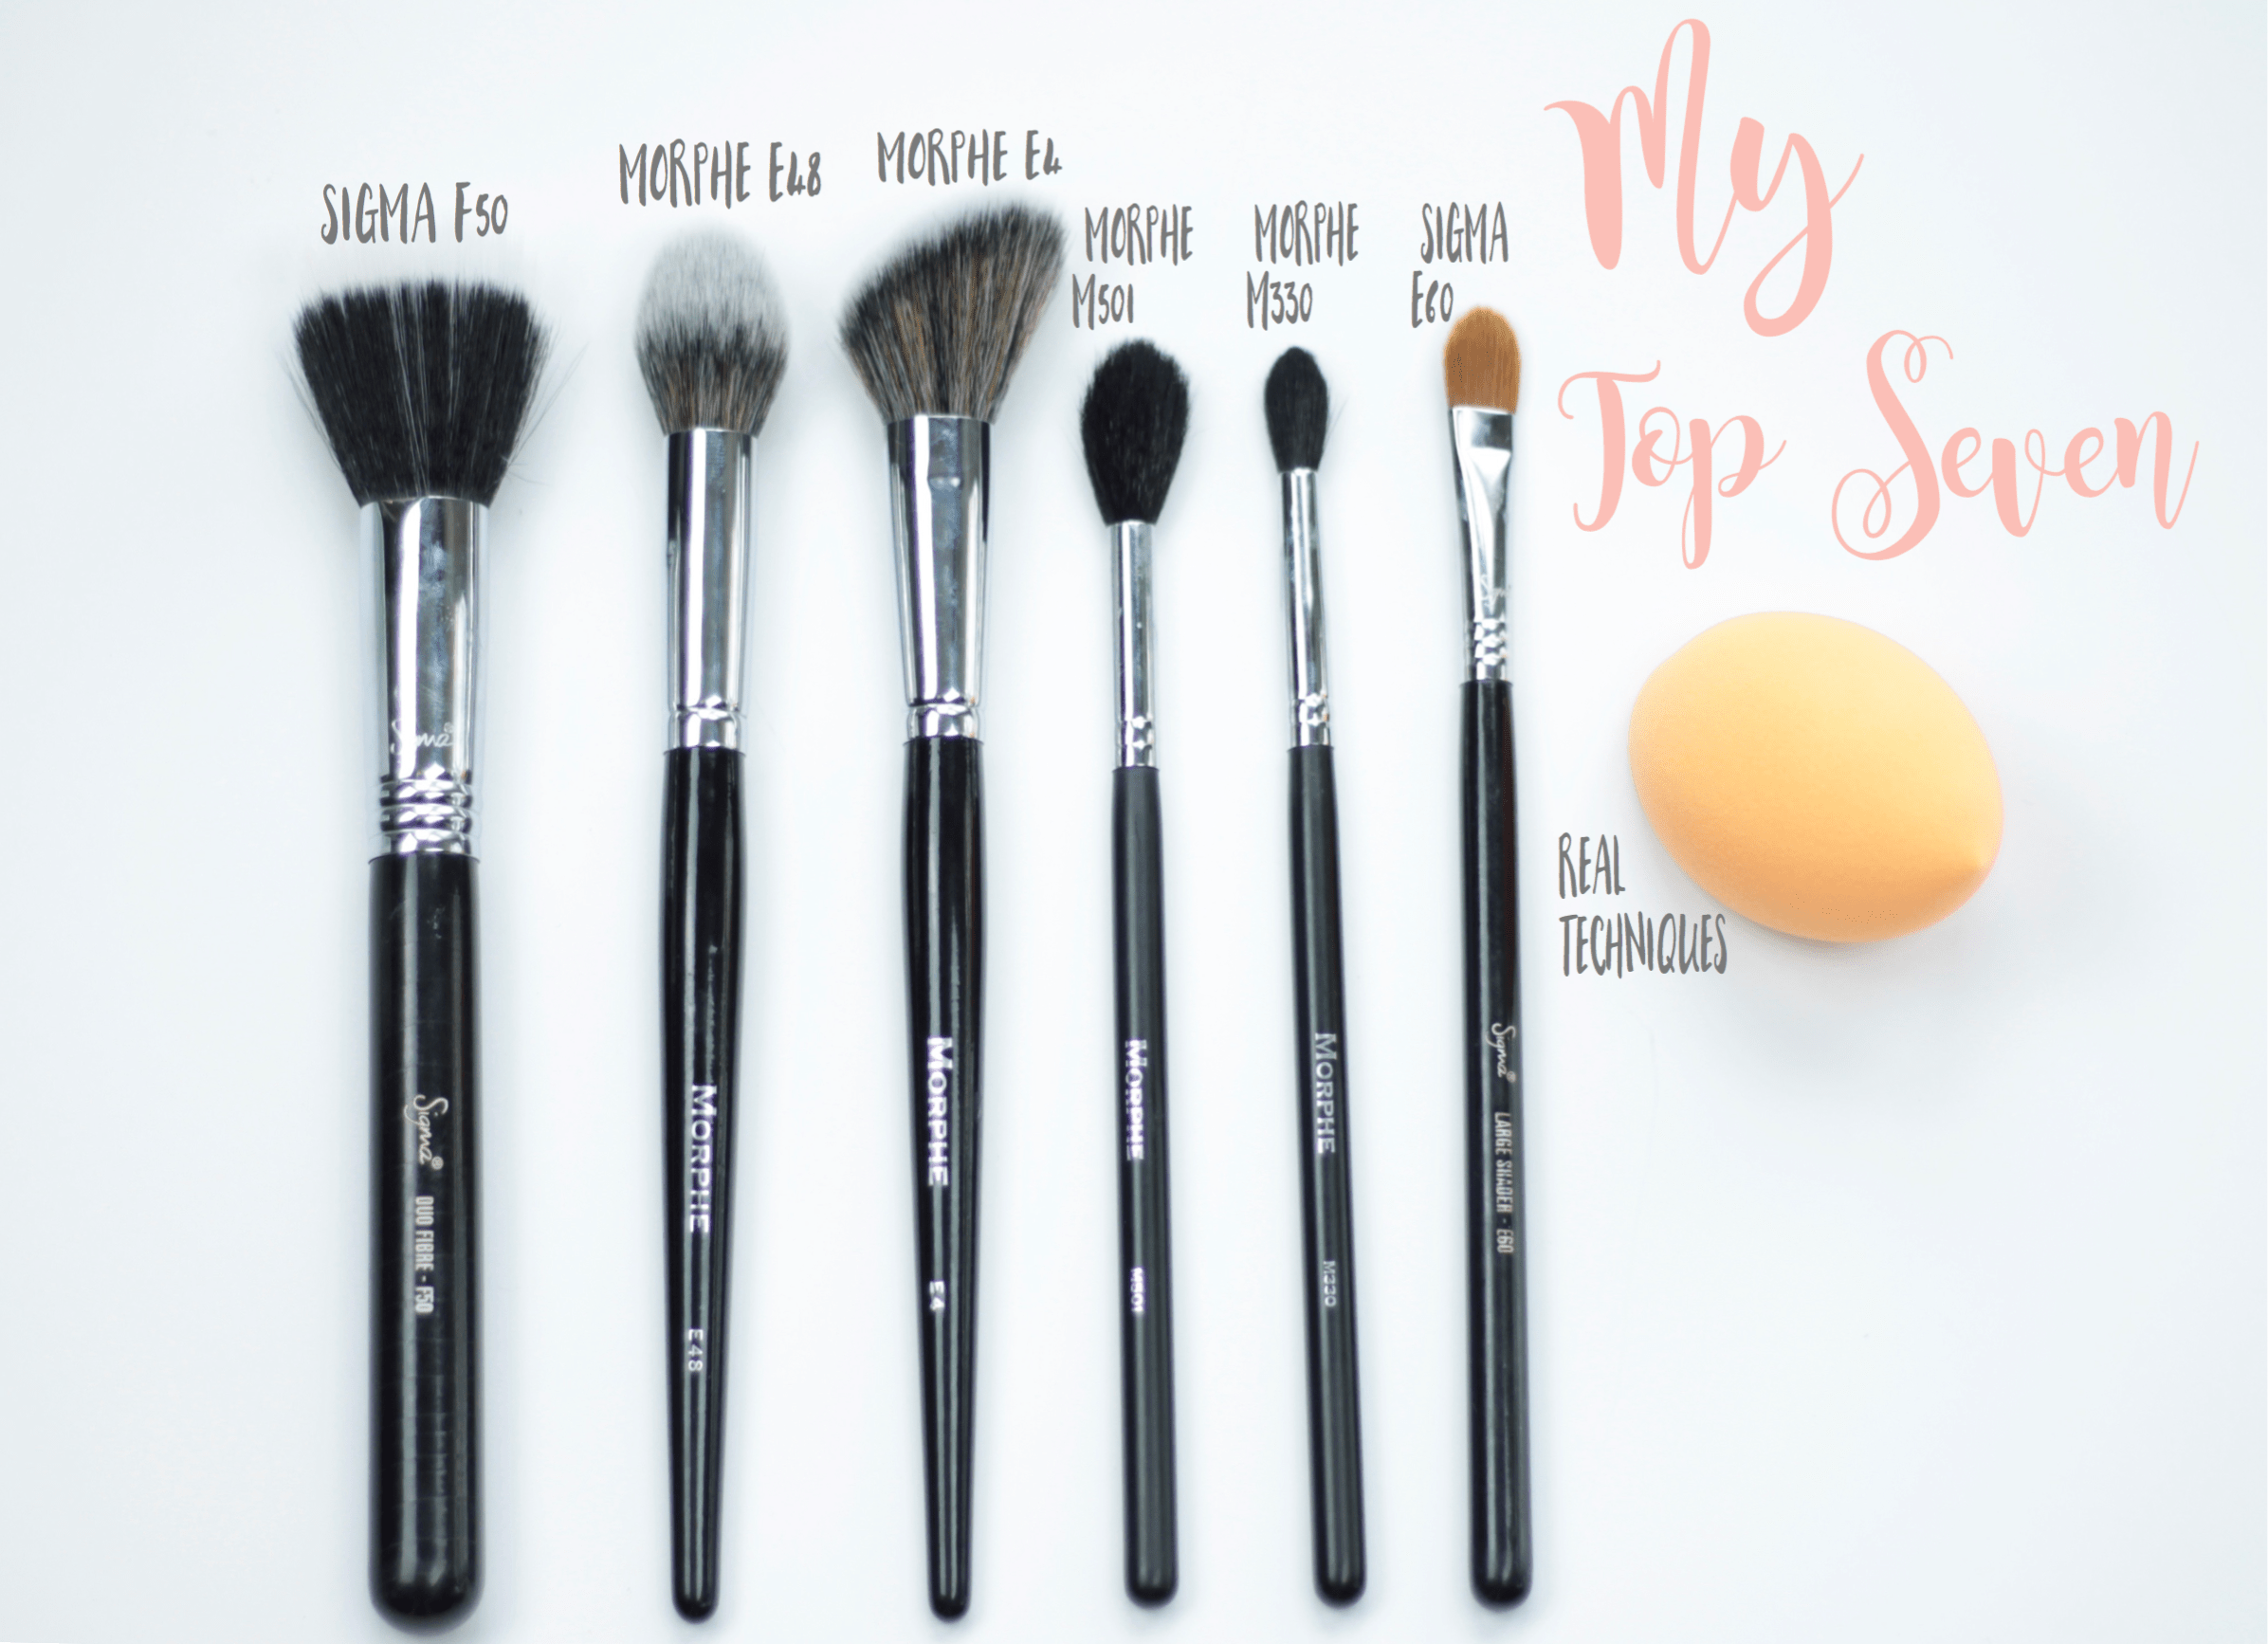 best eyeshadow brushes morphe. my top 7 best eyeshadow brushes morphe 6